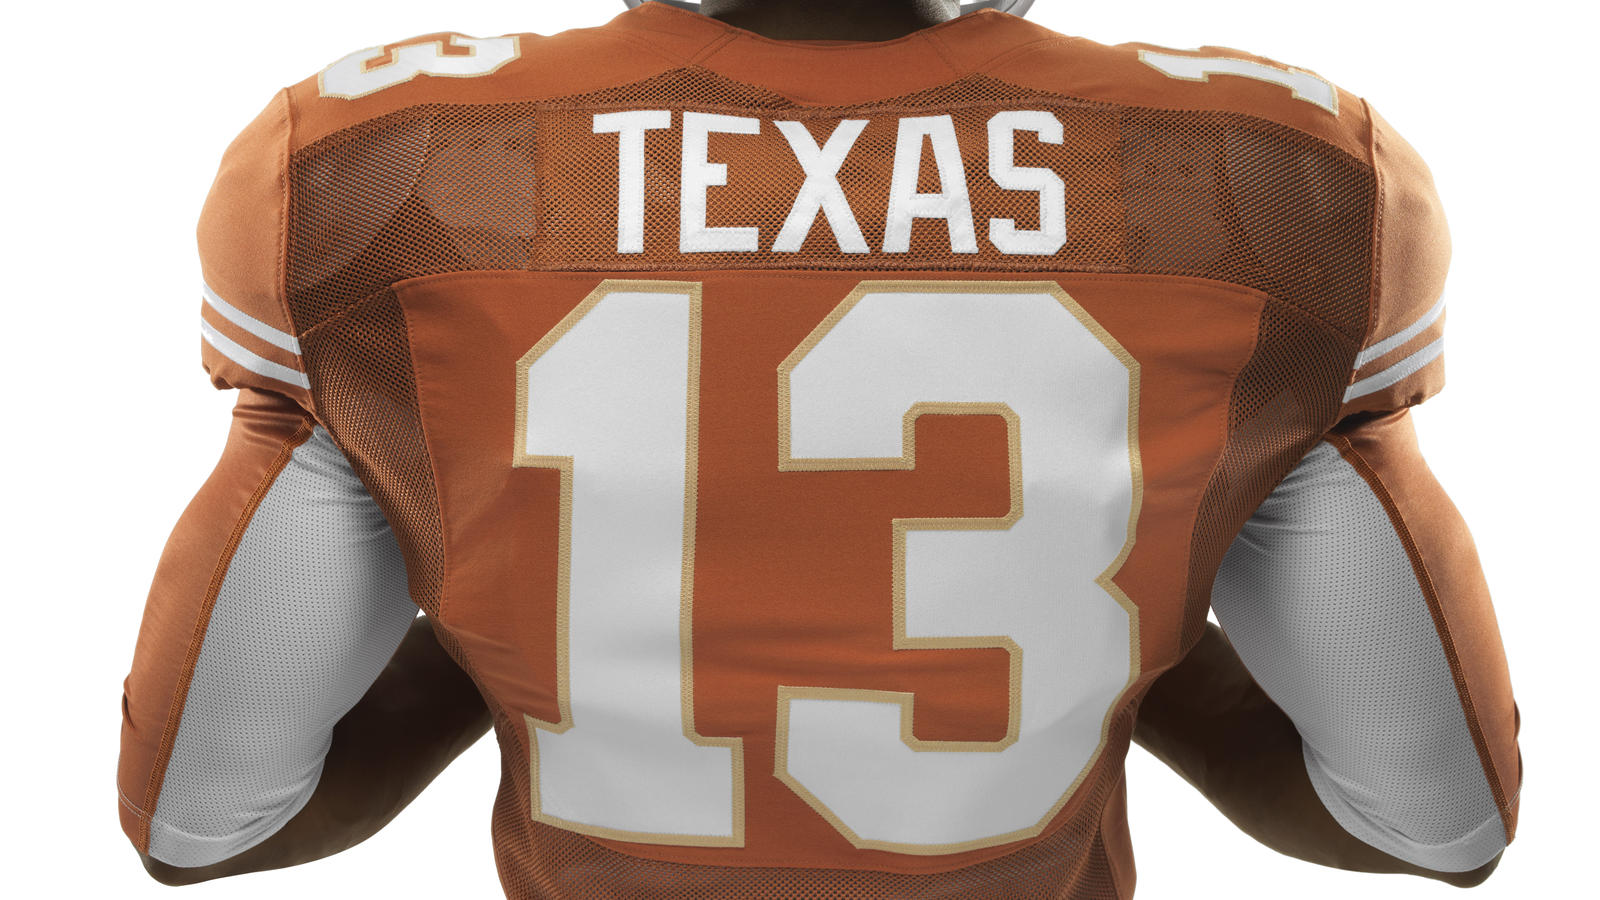 Ncaa Fb13 Uniforms Texas Sidetoside 0061